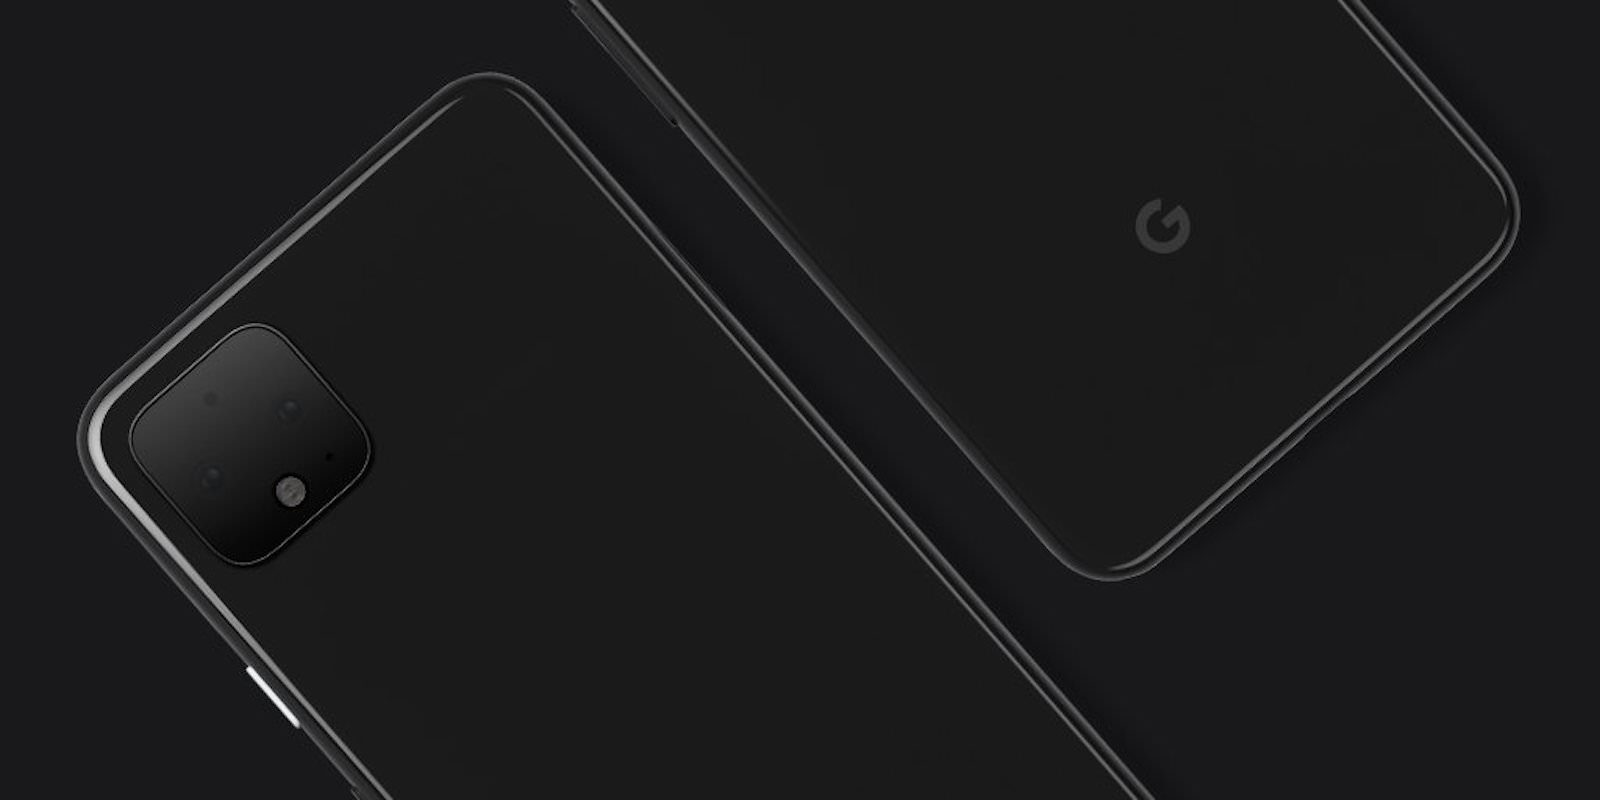 New Pixel 4 images shown by google